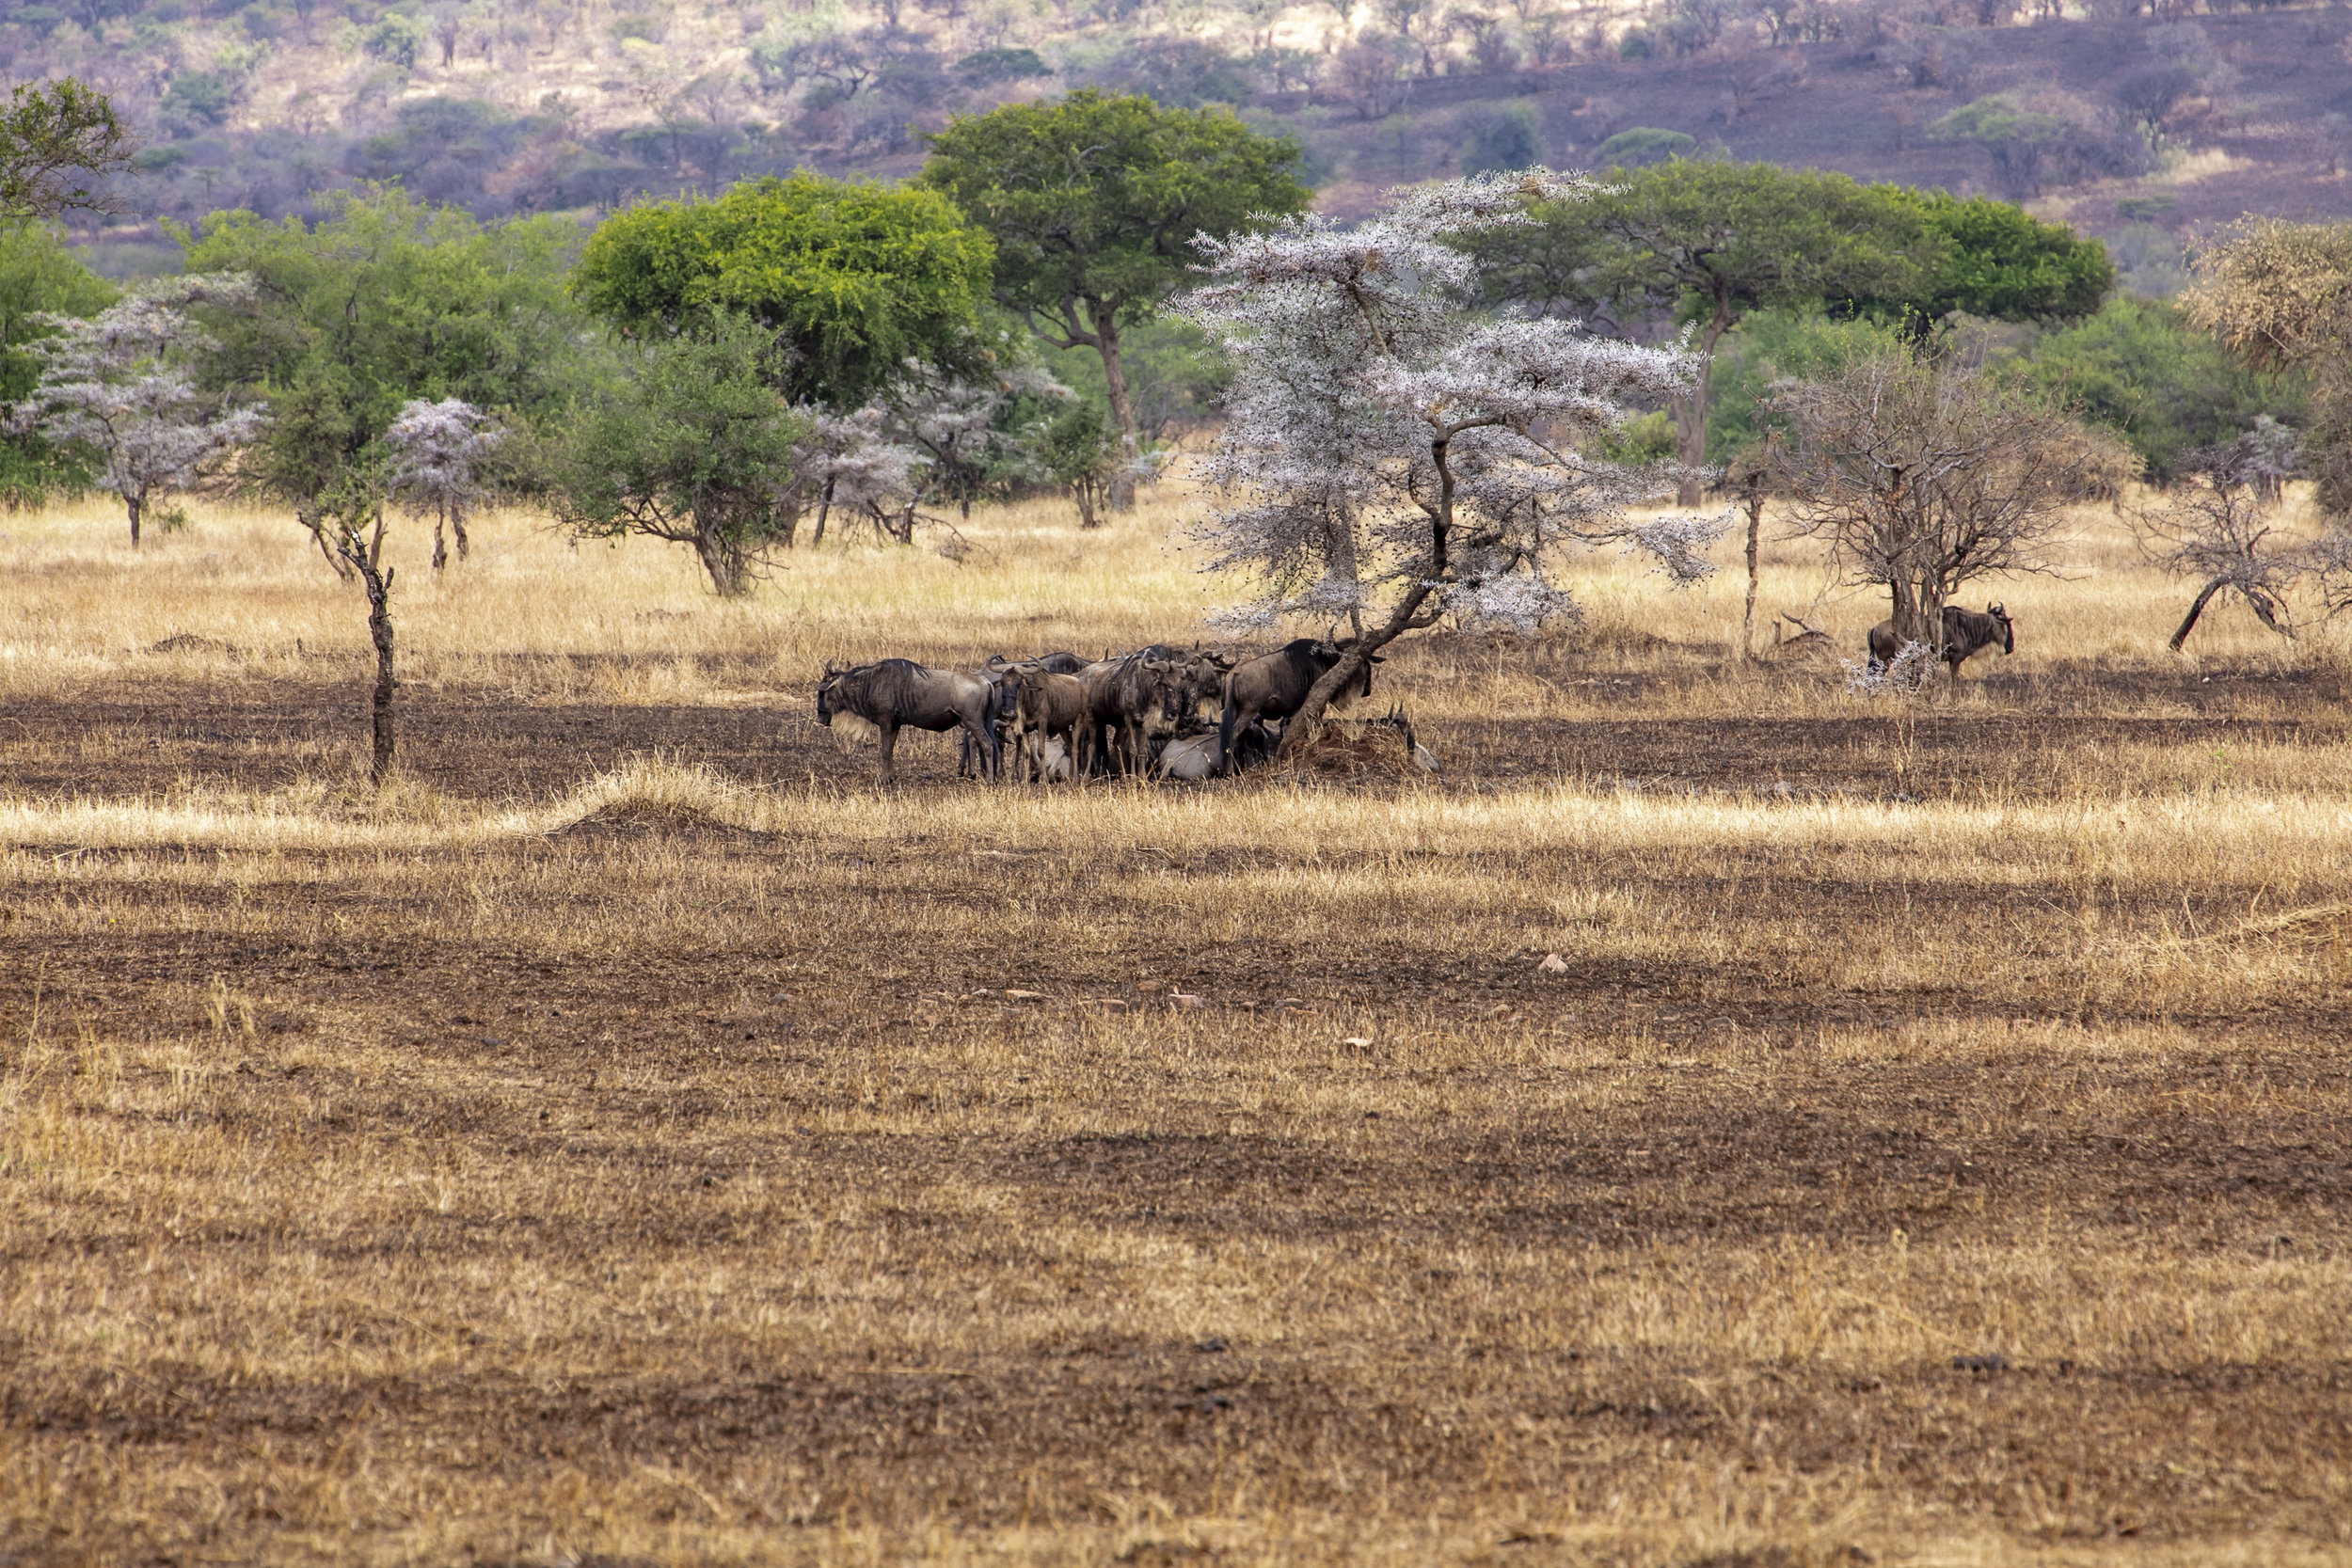 African Adventure - 28 July '18 - Musoma, Tanzania to Serengeti National Park - 018.JPG